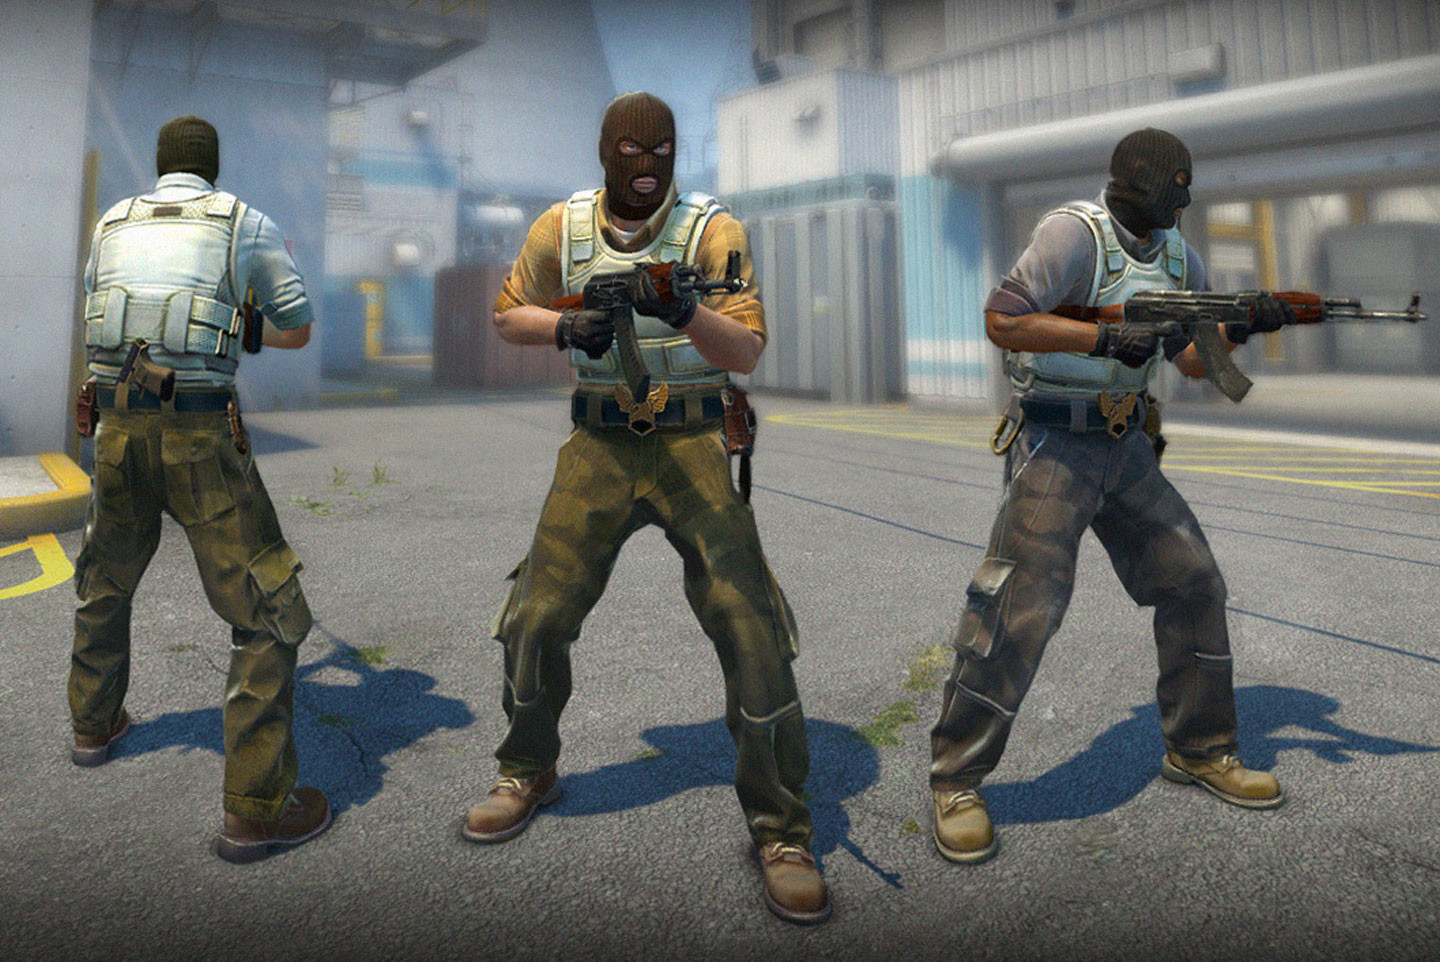 Is it safe to play csgo?